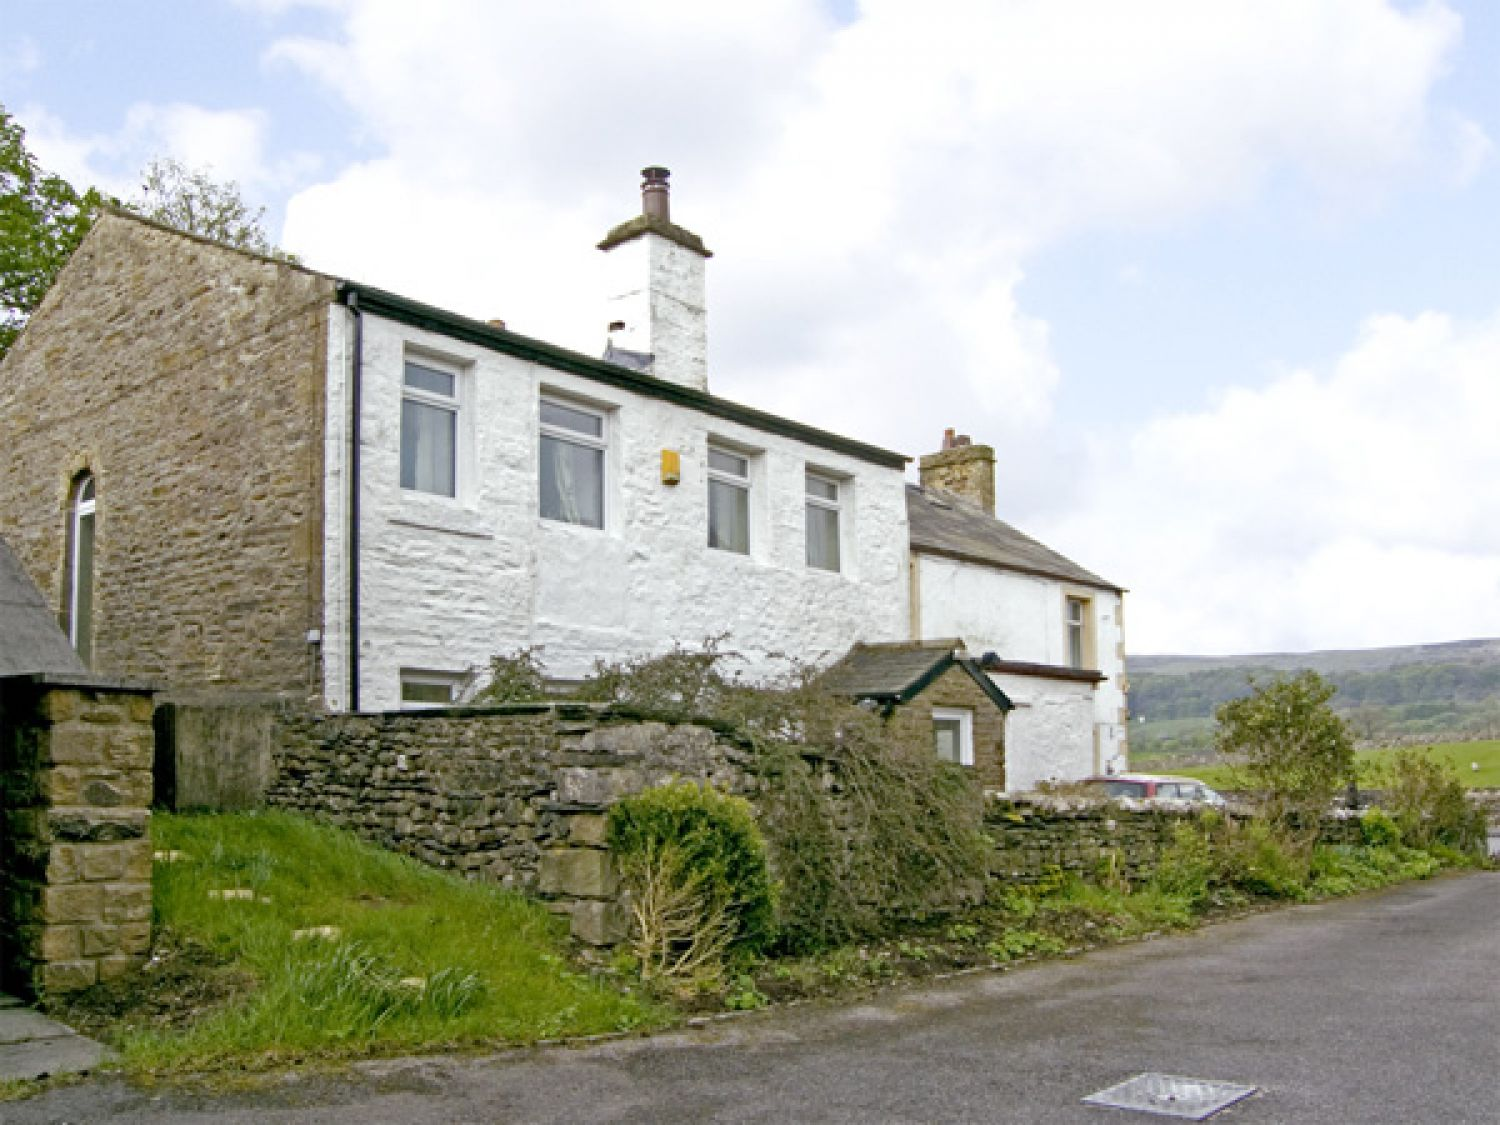 Fell Cottage Horton In Ribblesdale Settle Yorkshire